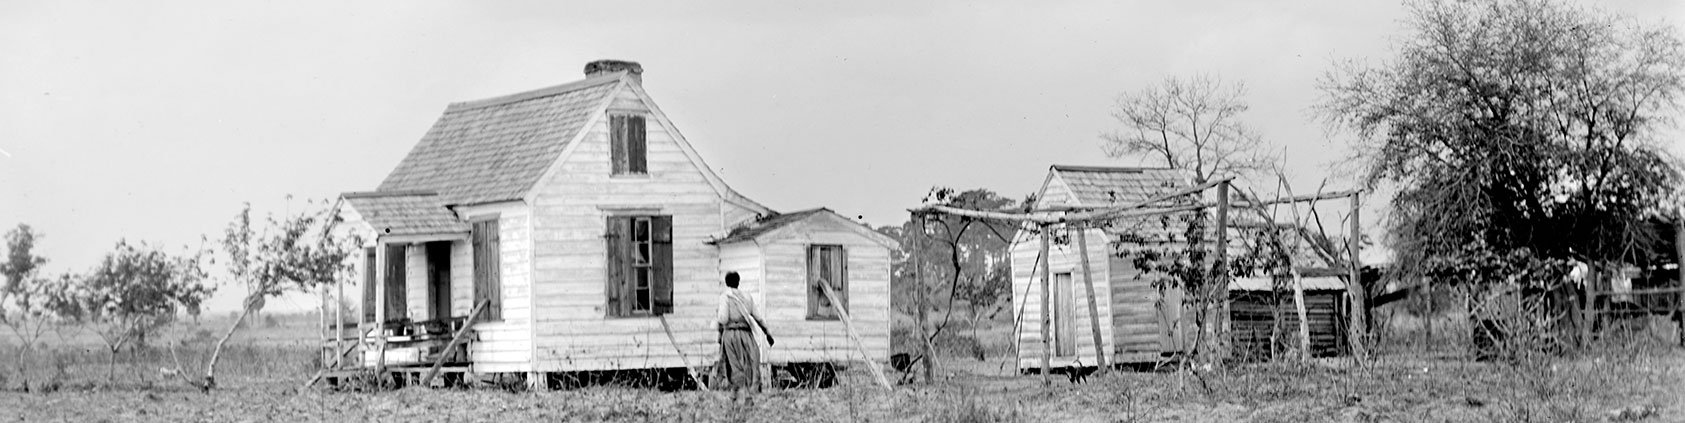 Historic Gullah photo